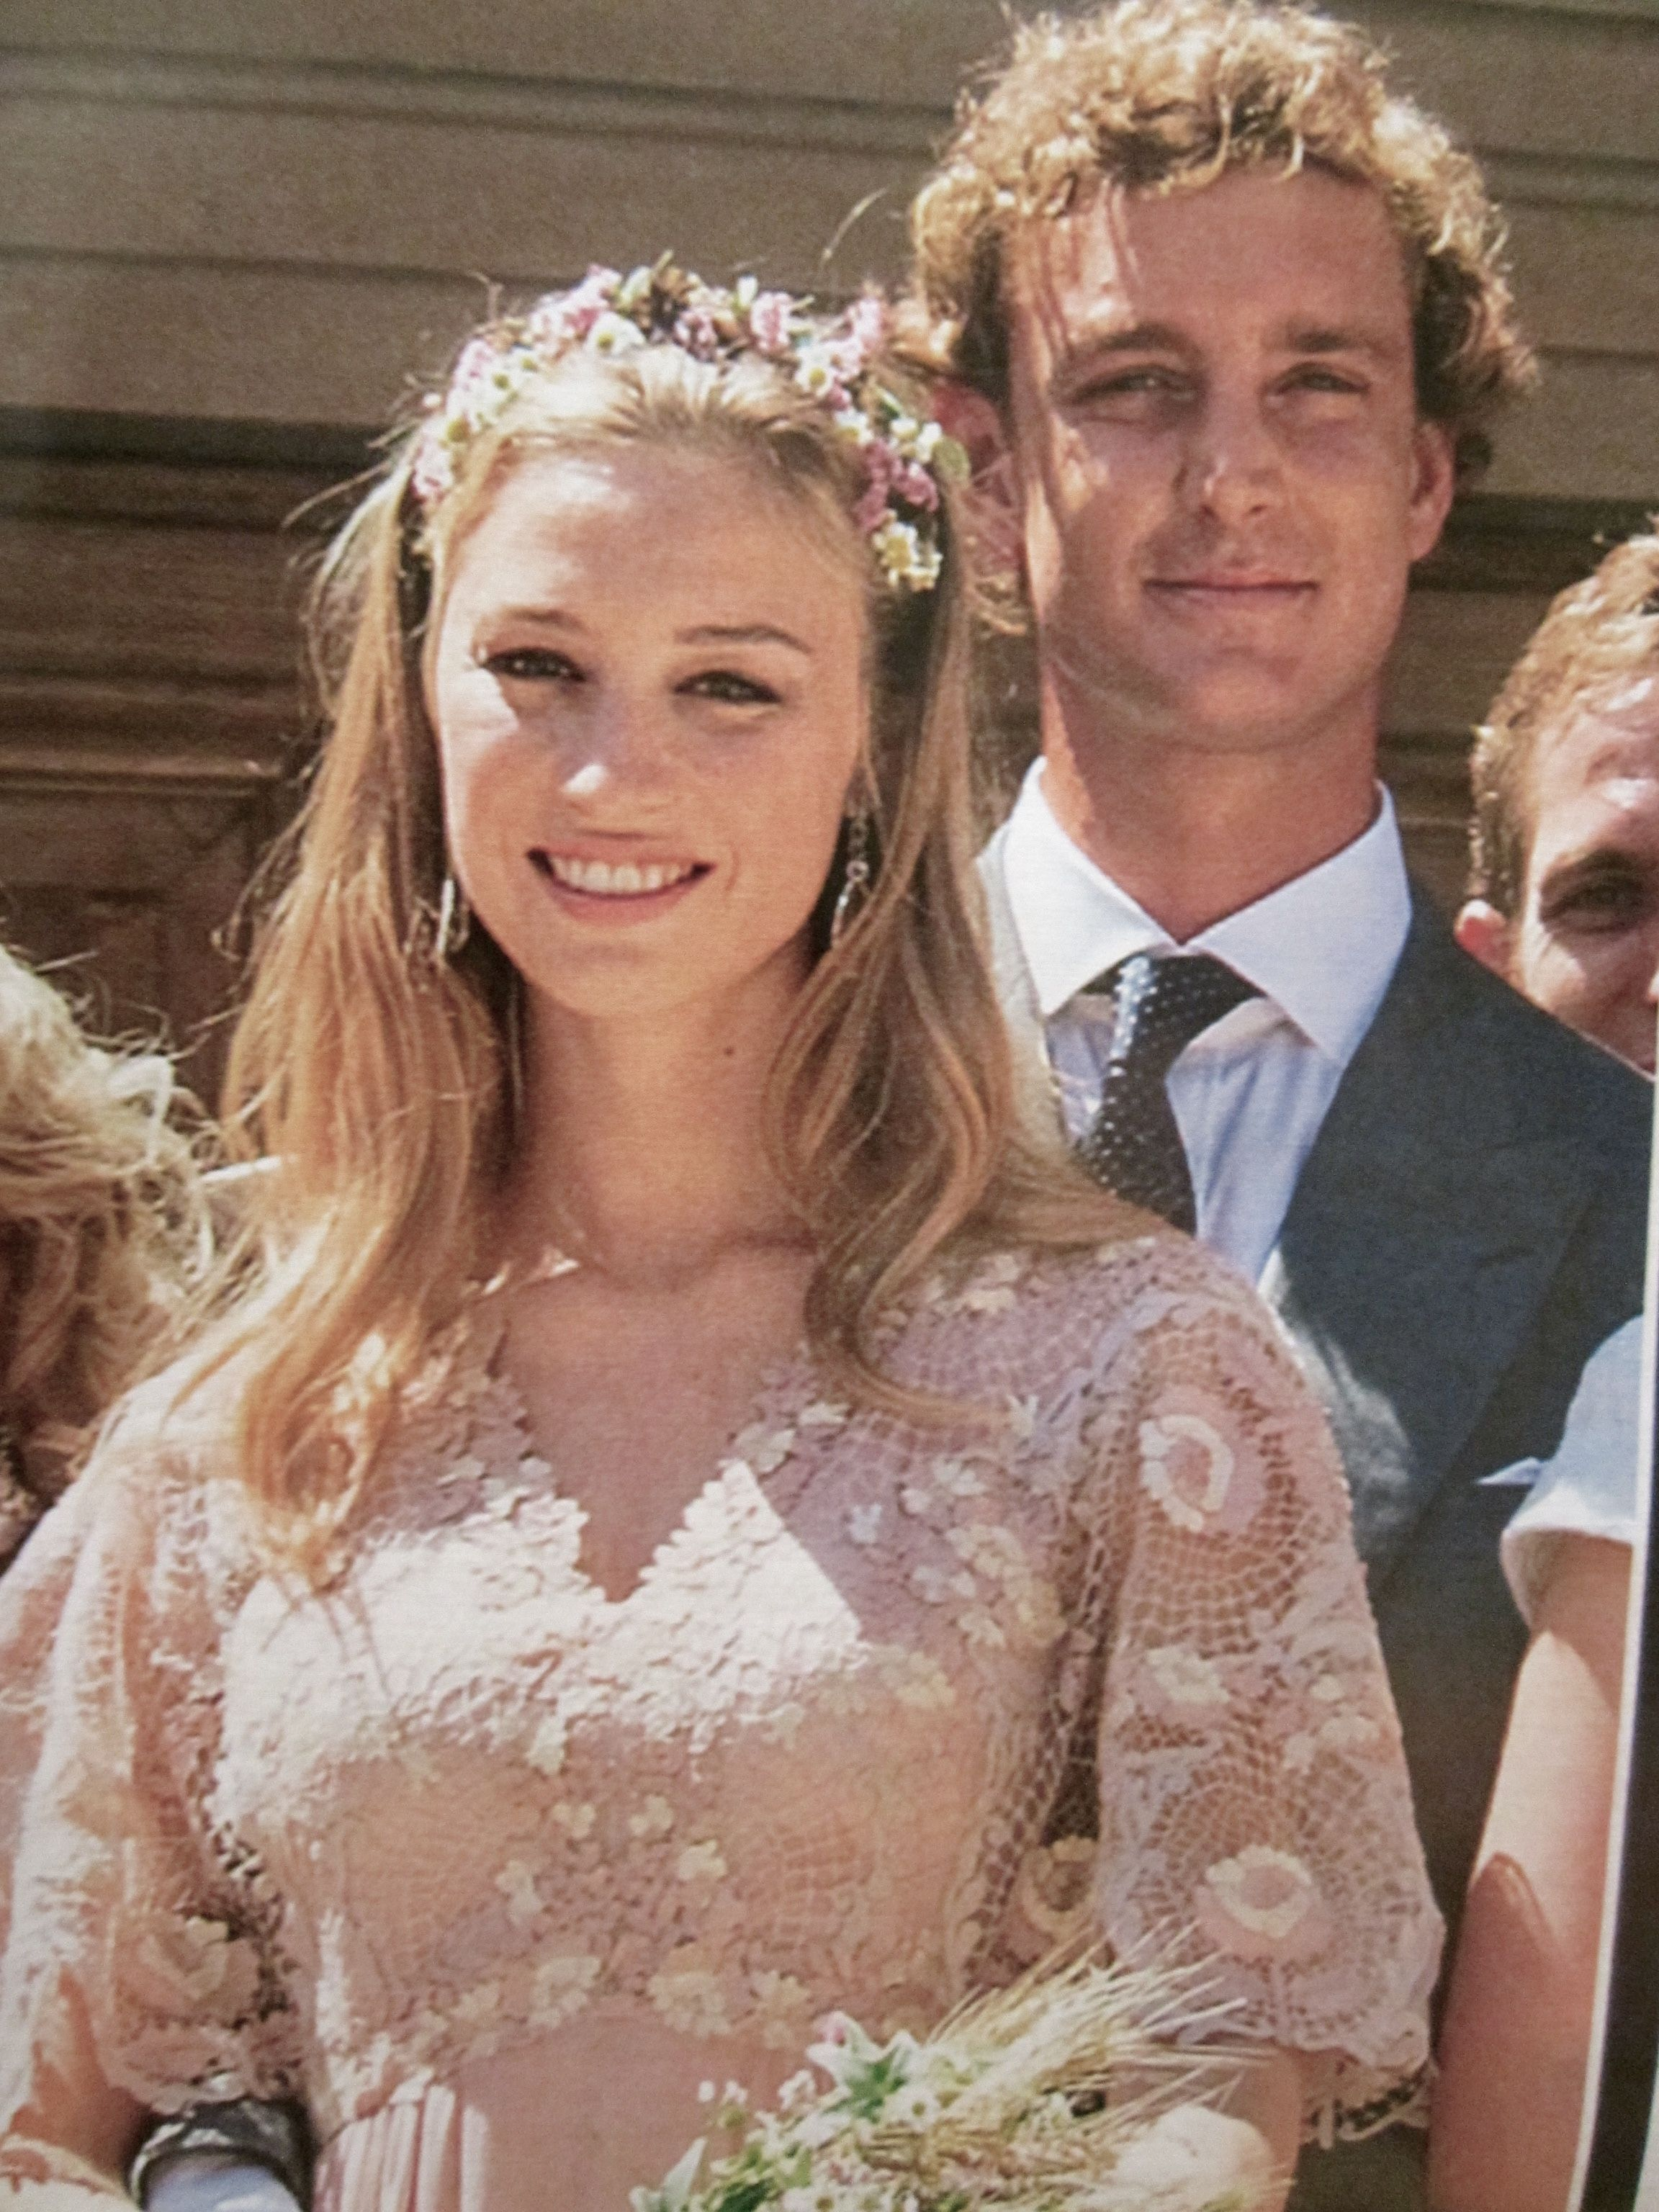 Pierre Beatrice Monaco July 2015 Civil Ceremony